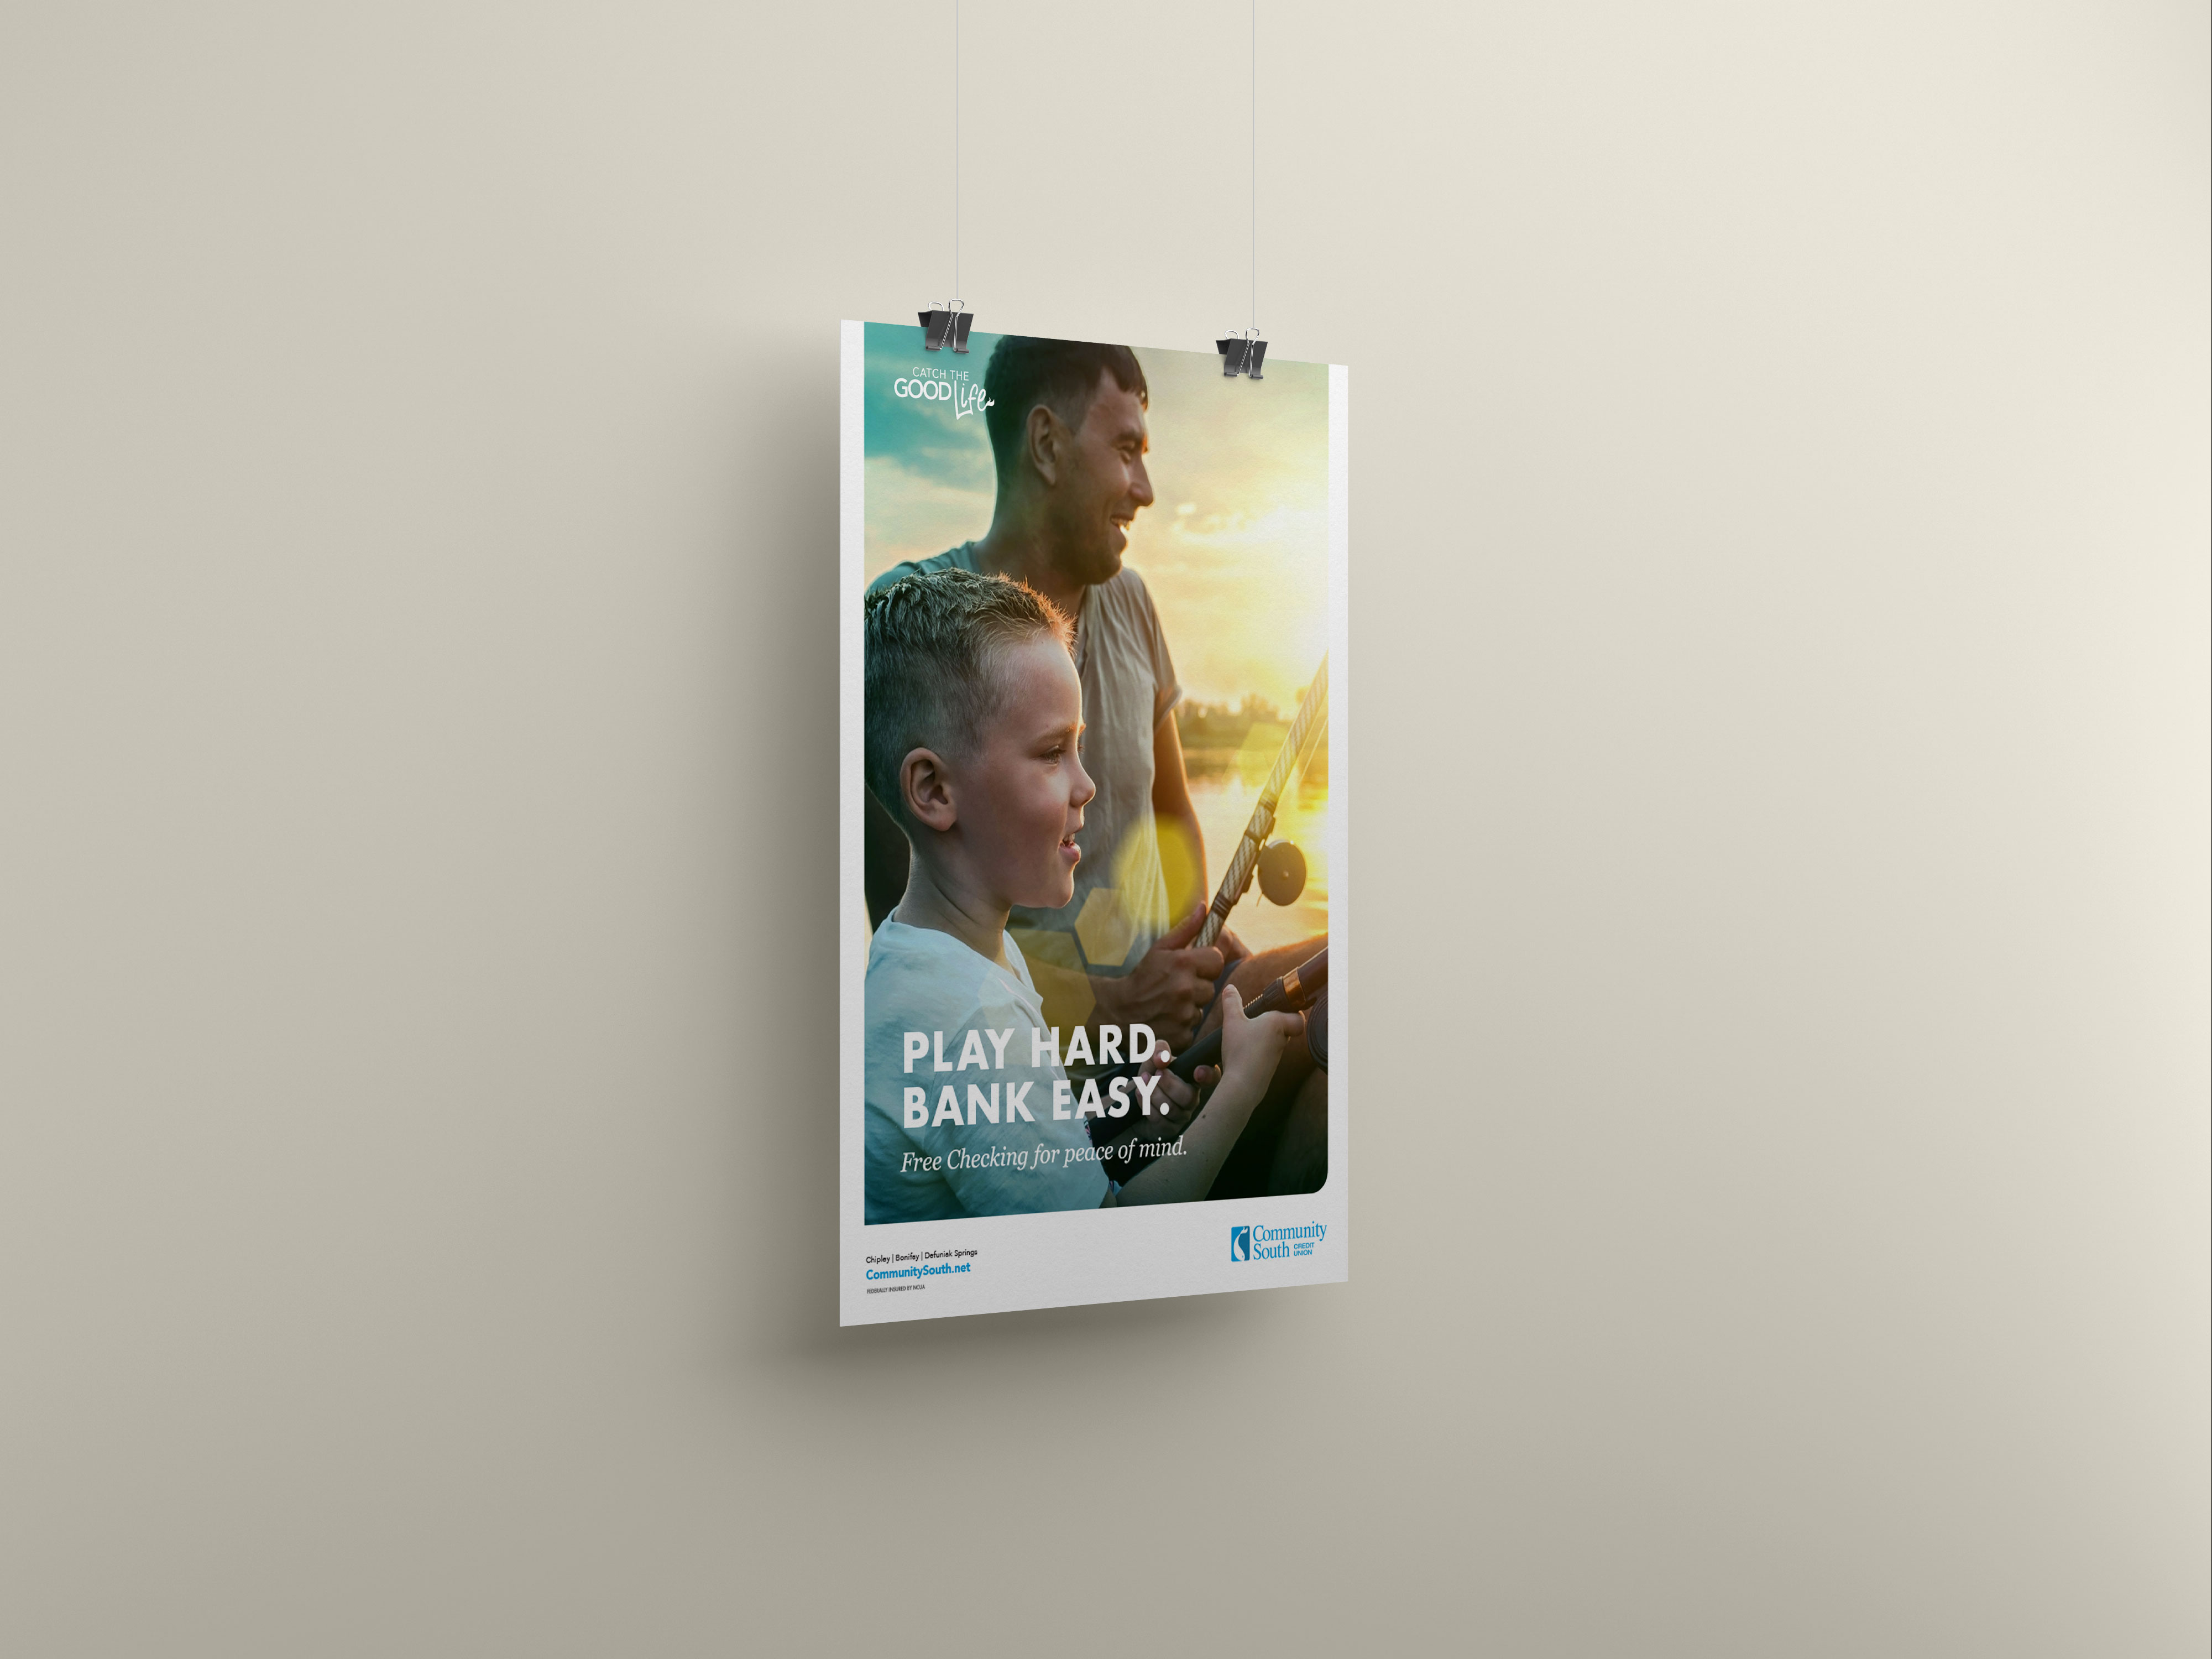 Poster hanging from wall with father and son fishing